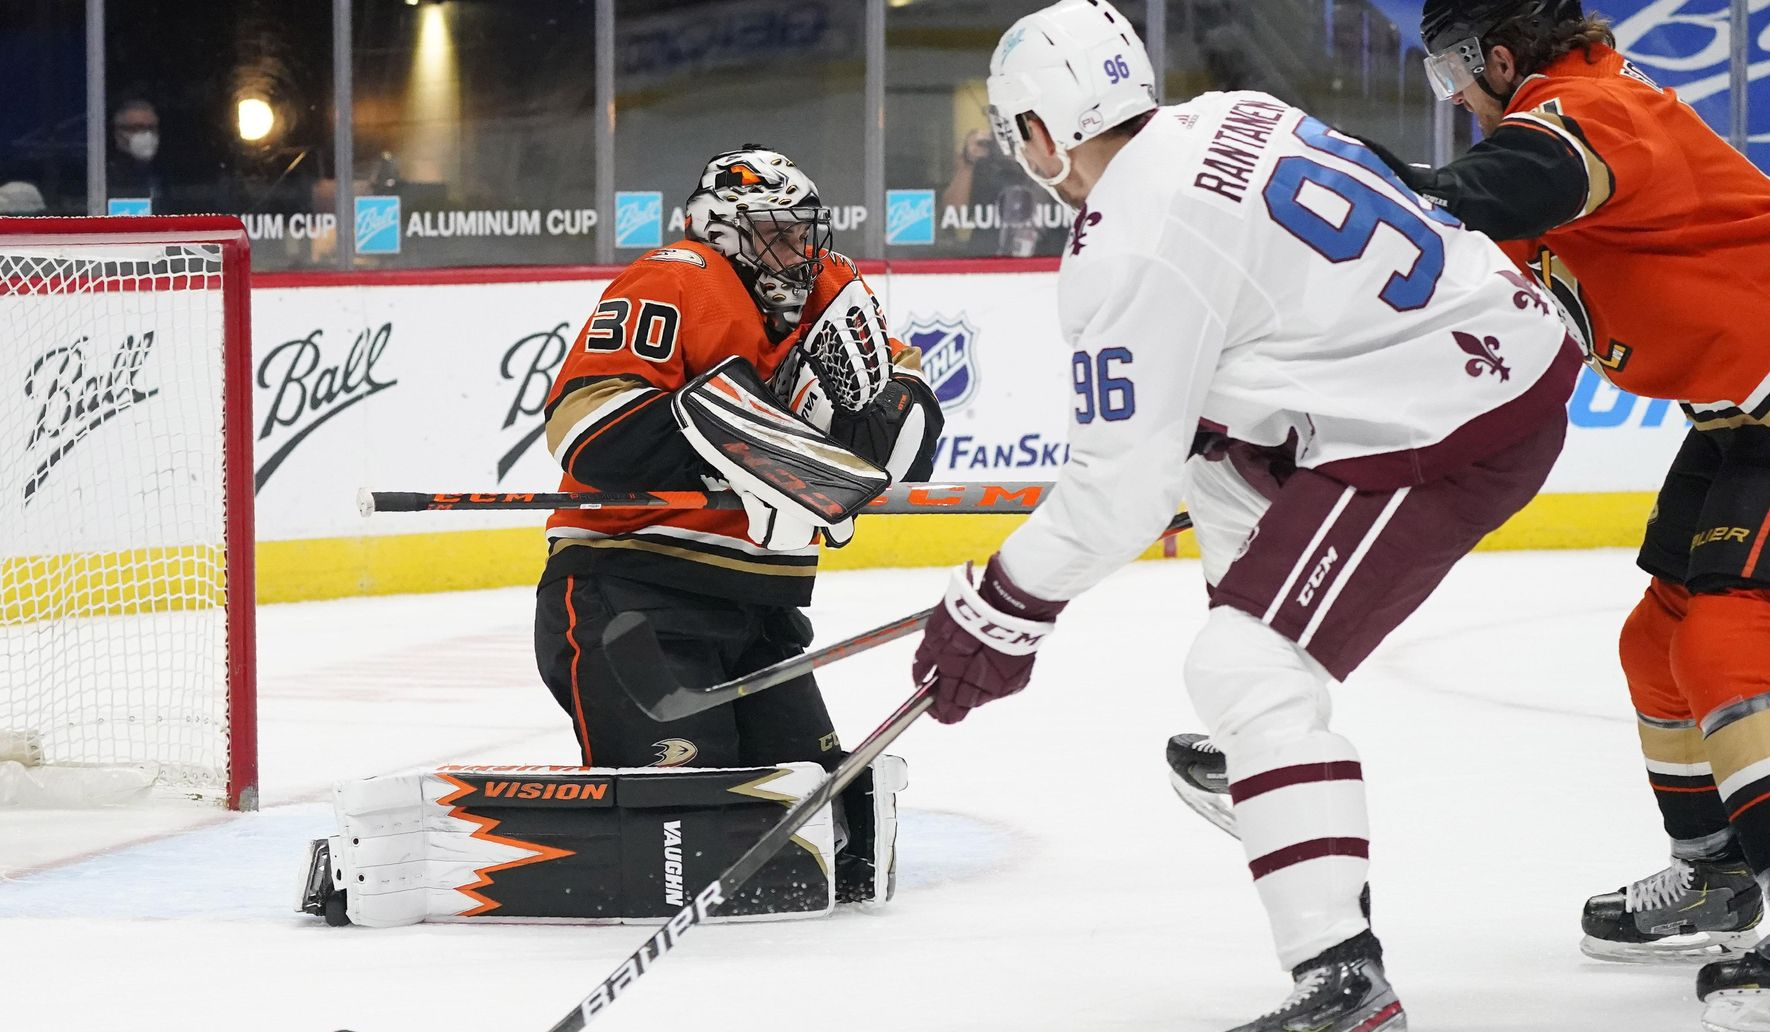 Ducks_avalanche_hockey_61102_c0-241-4395-2803_s1770x1032